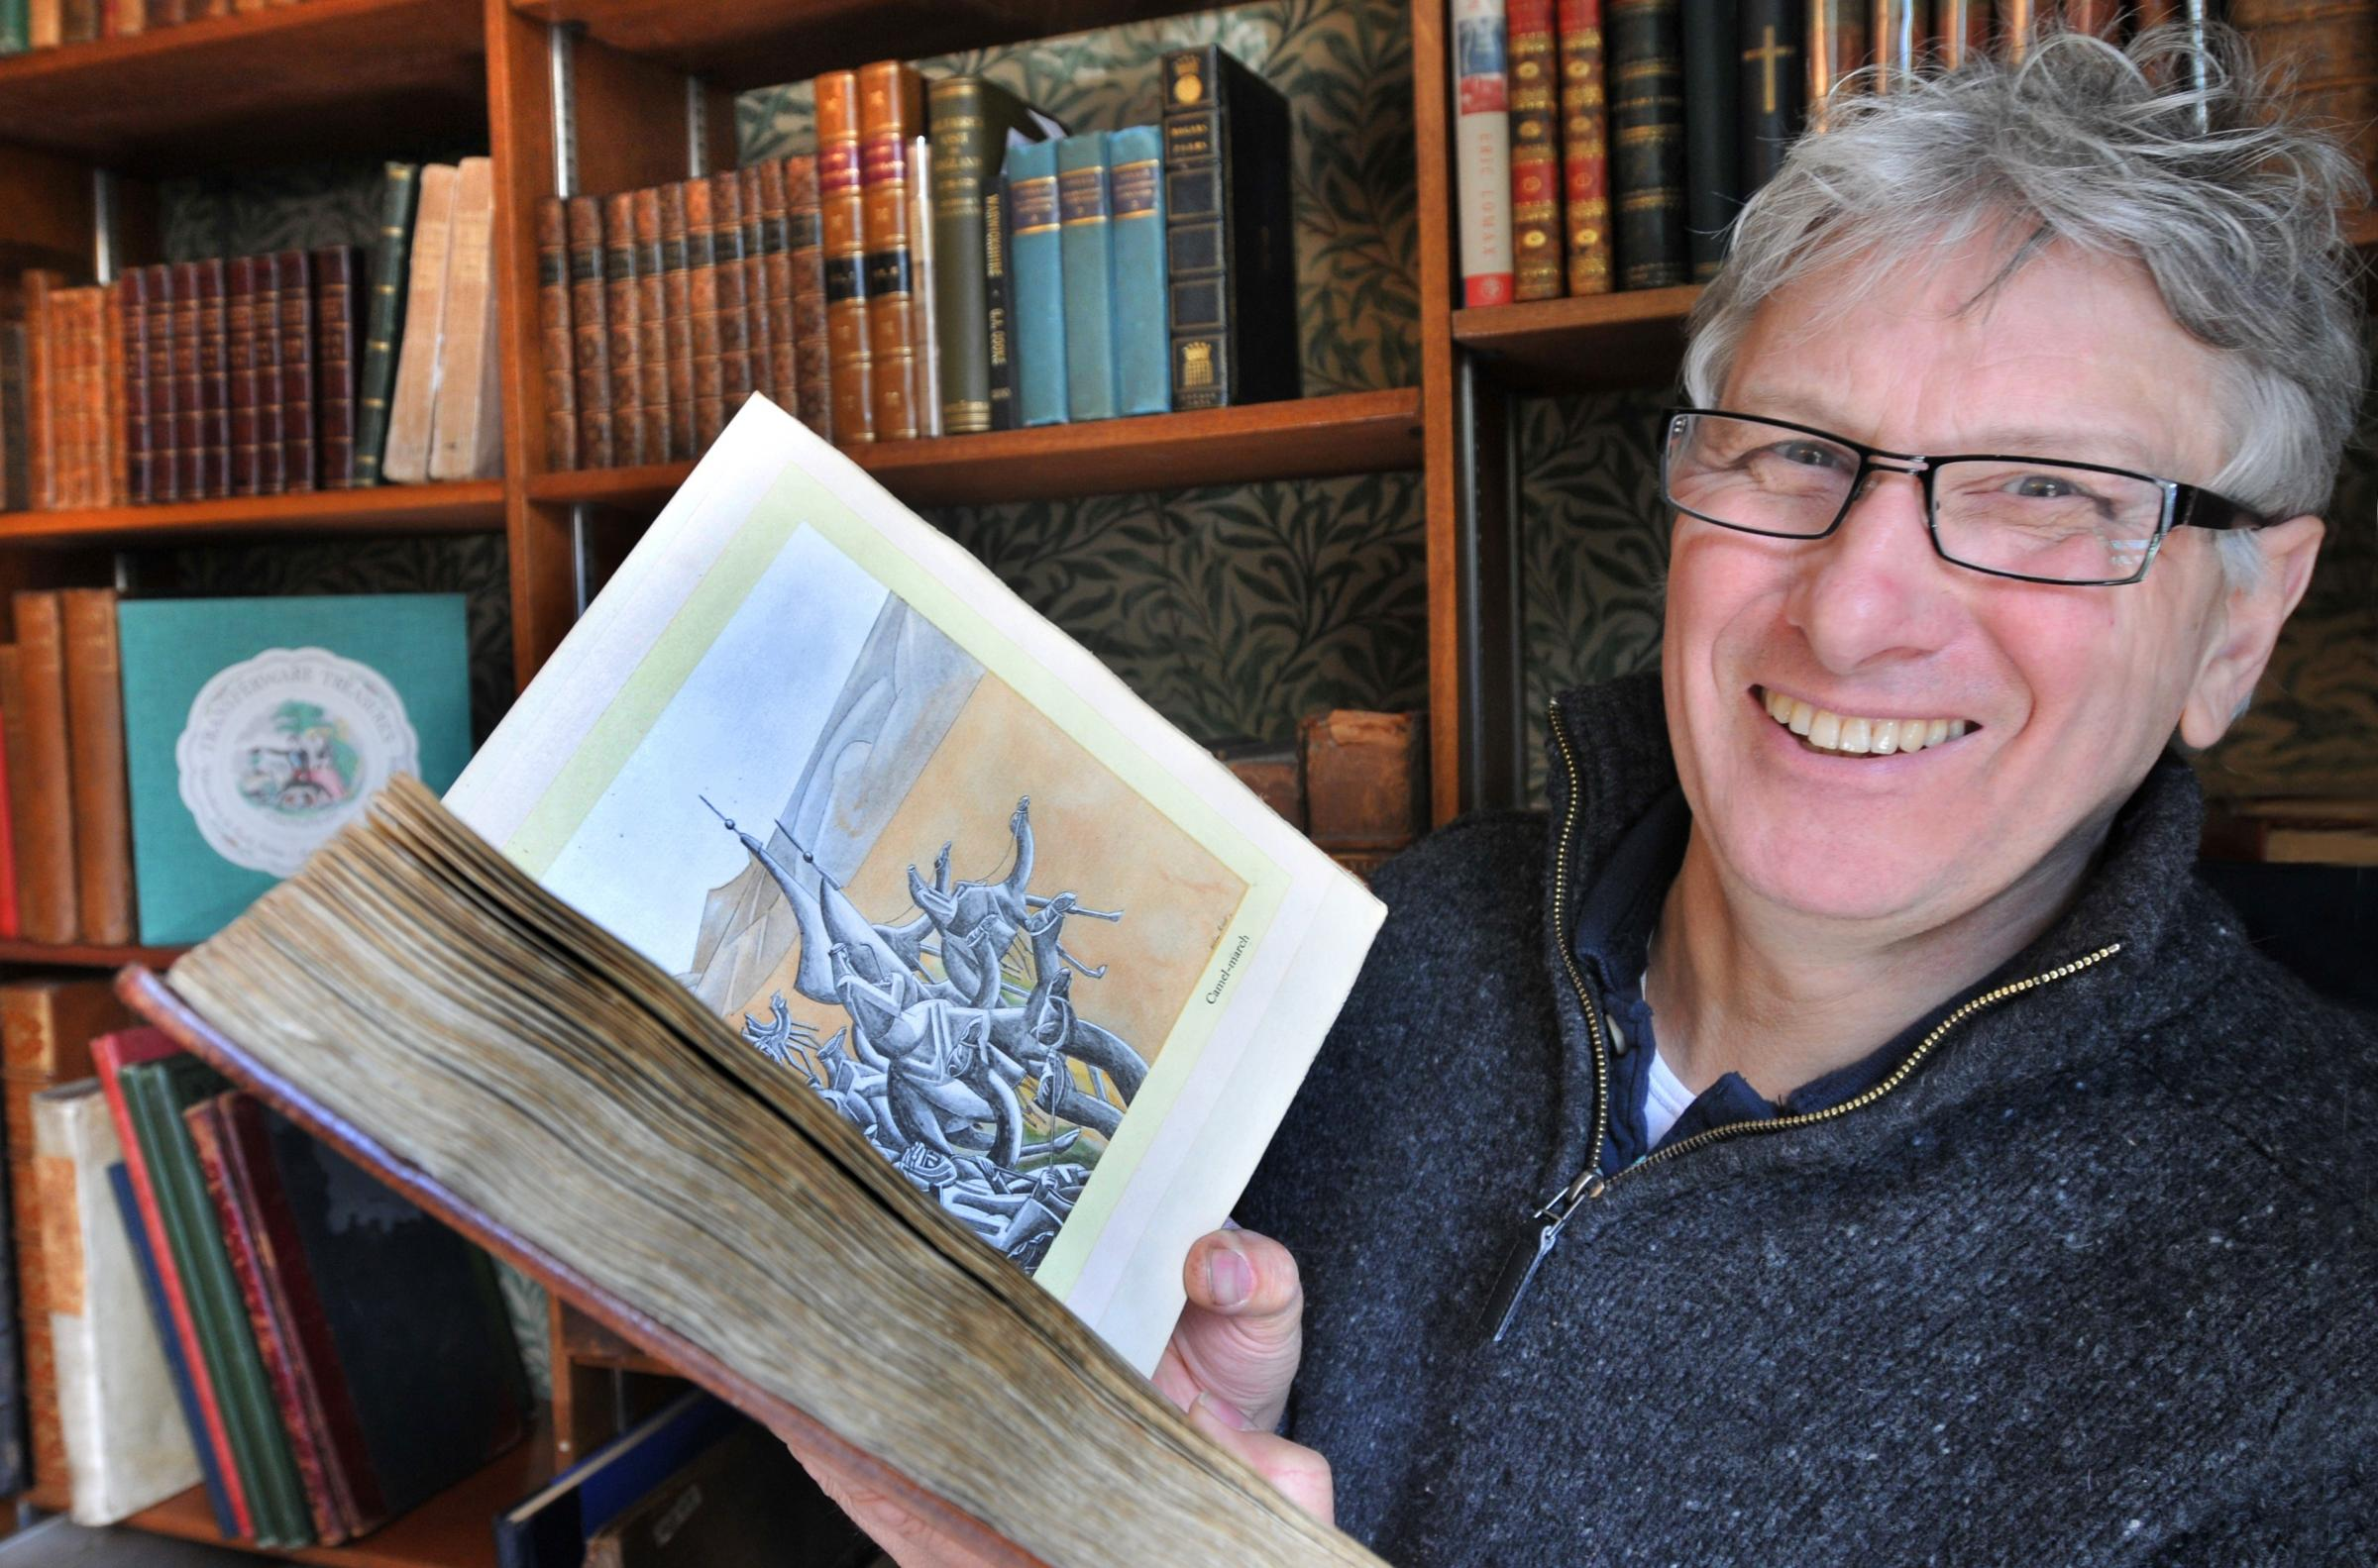 Tony Fothergill with the 1926 first edition of T.E. Lawrence's book The Seven Pillars of Wisdom which is being offered for sale at York booksellers Ken Spelman, of Micklegate